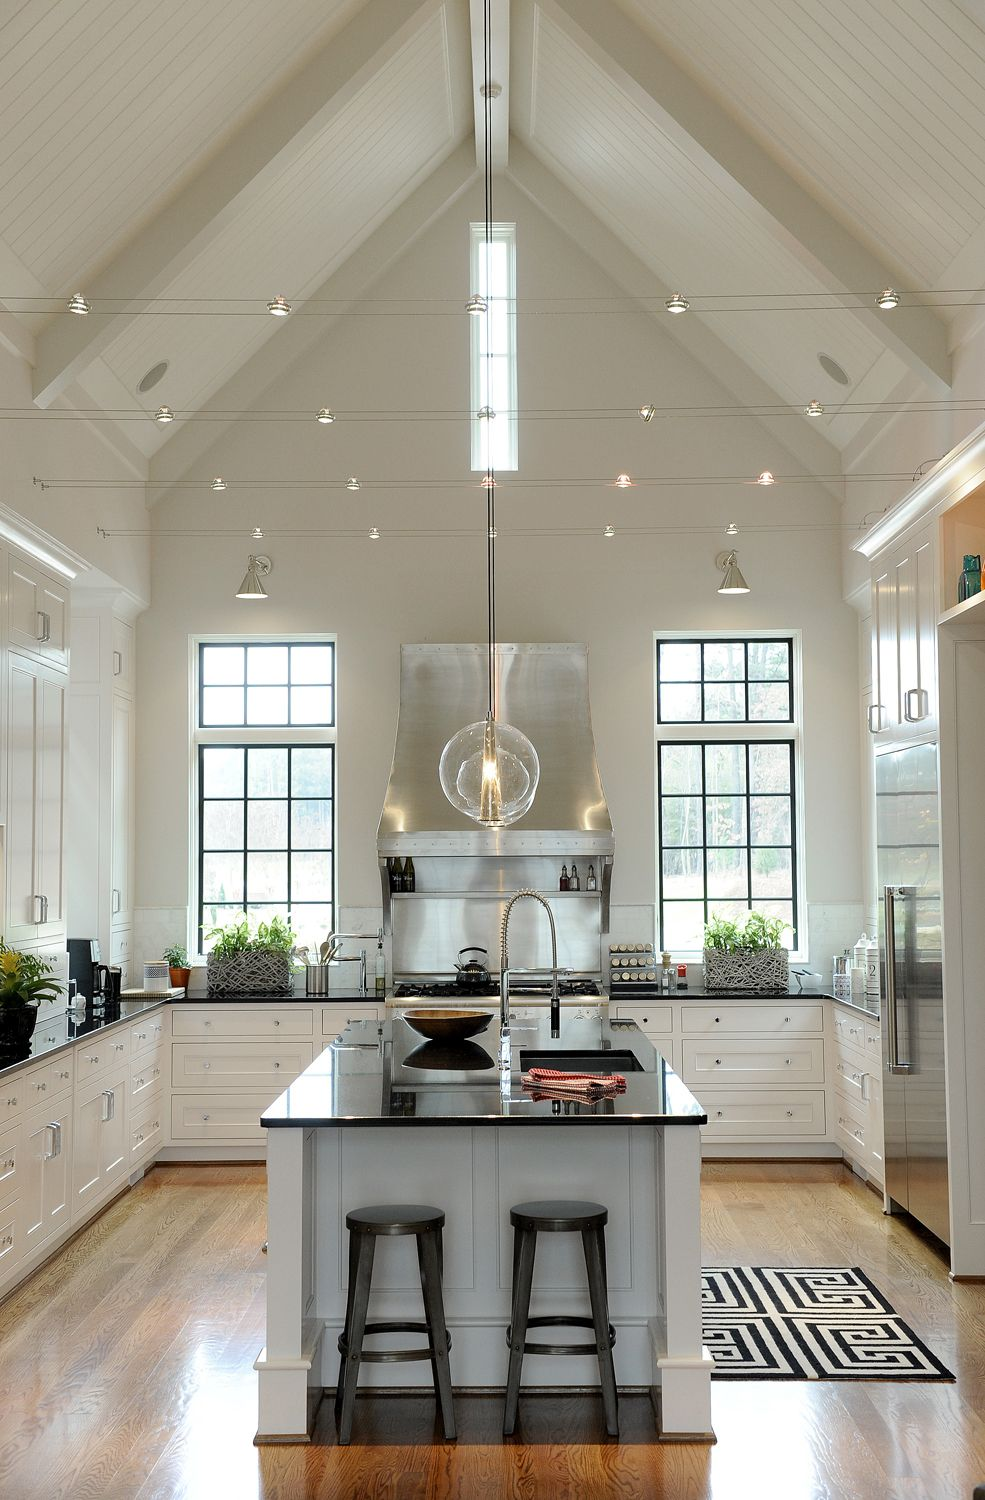 Vaulted ceilings 101 history pros cons and inspirational vaulted ceilings 101 history pros cons and inspirational examples vaulted ceiling lightingvaulted aloadofball